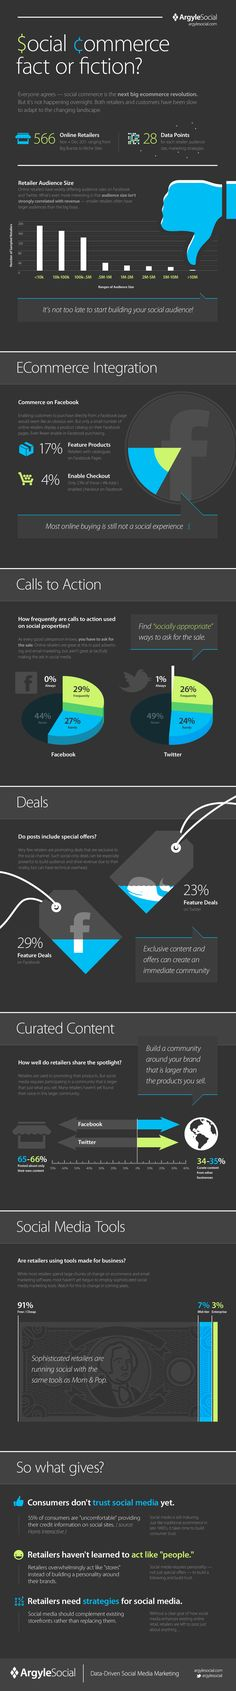 Social Commerce: Fact or Fiction?